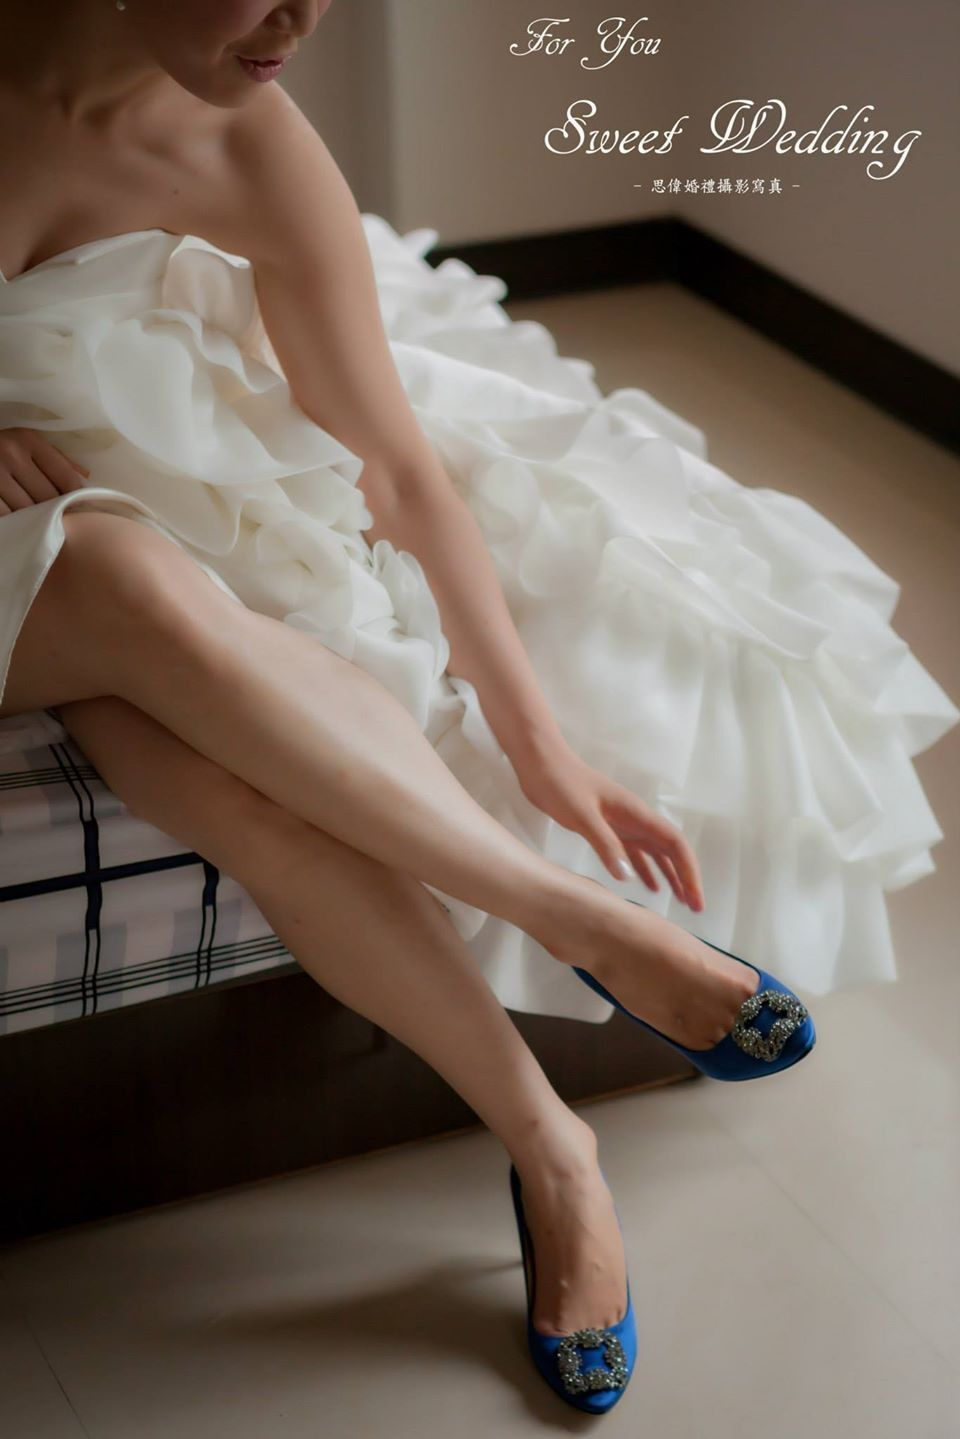 In the soft light of the bride dressed in a navy blue heels